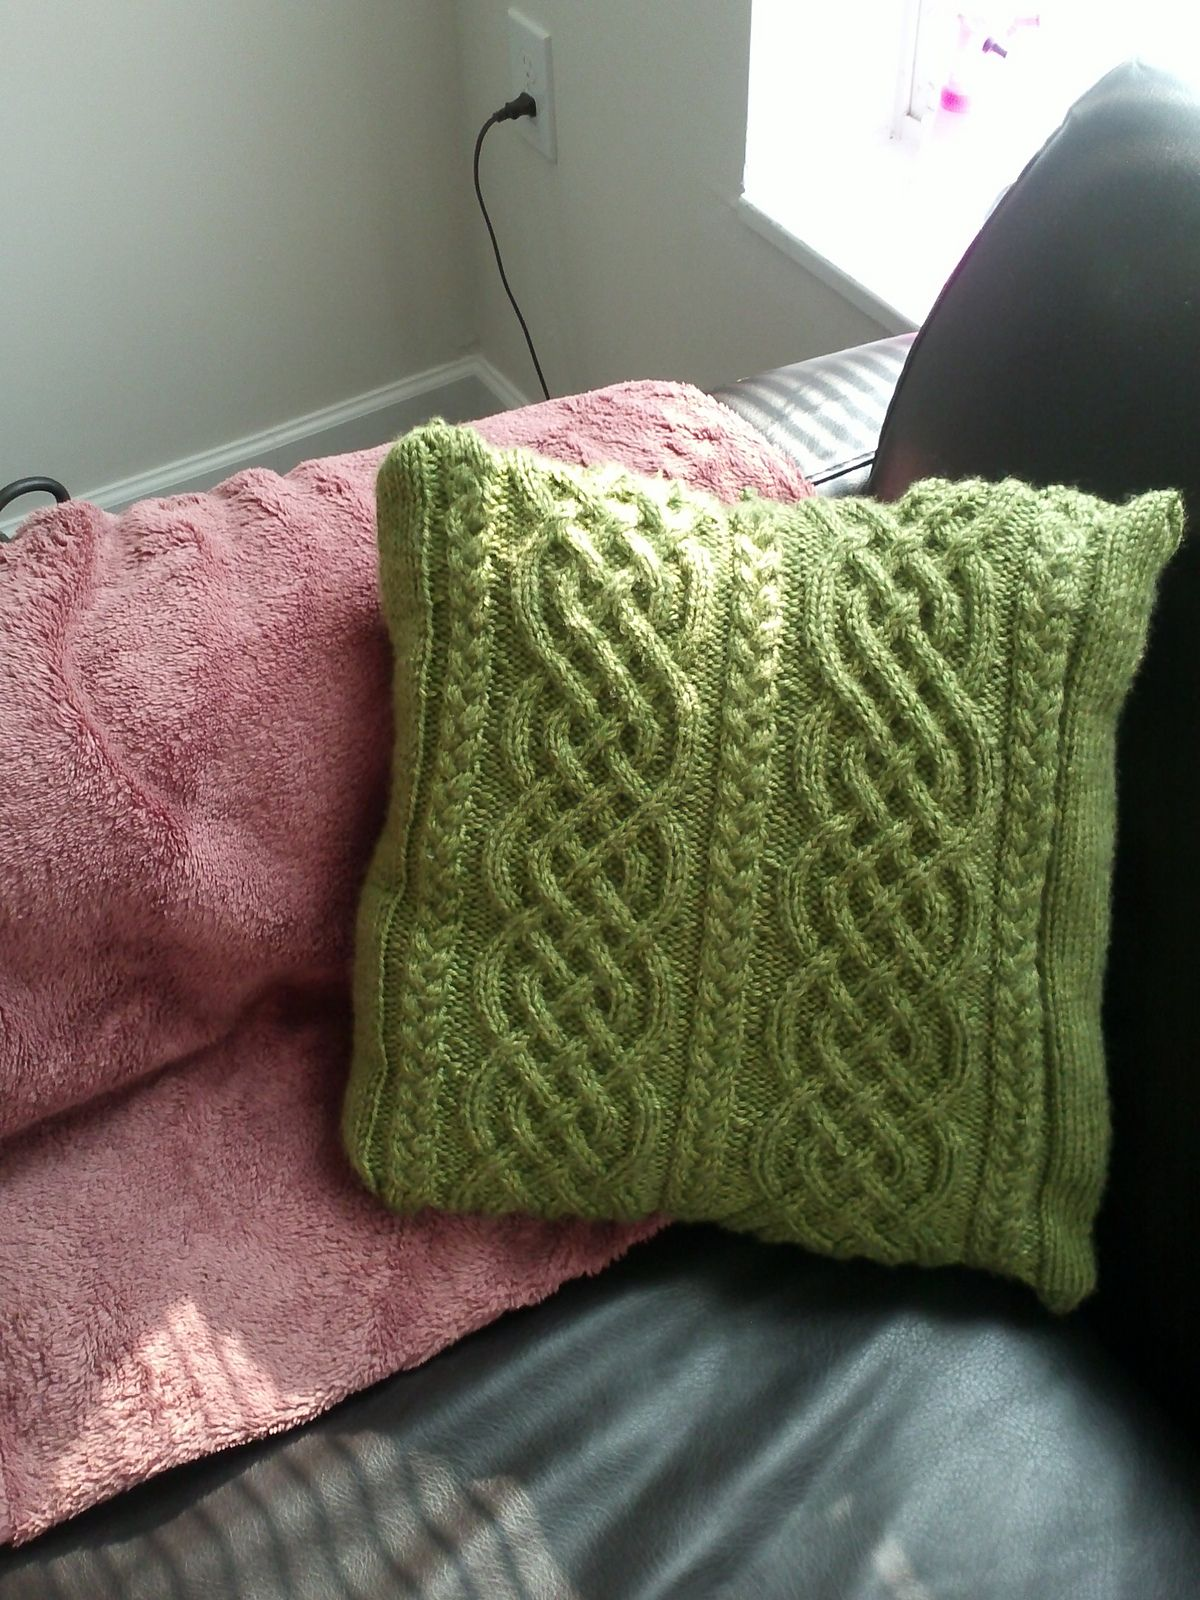 Ravelry: Celtic Knit Aran Pillow by Glenna C. (With images ...